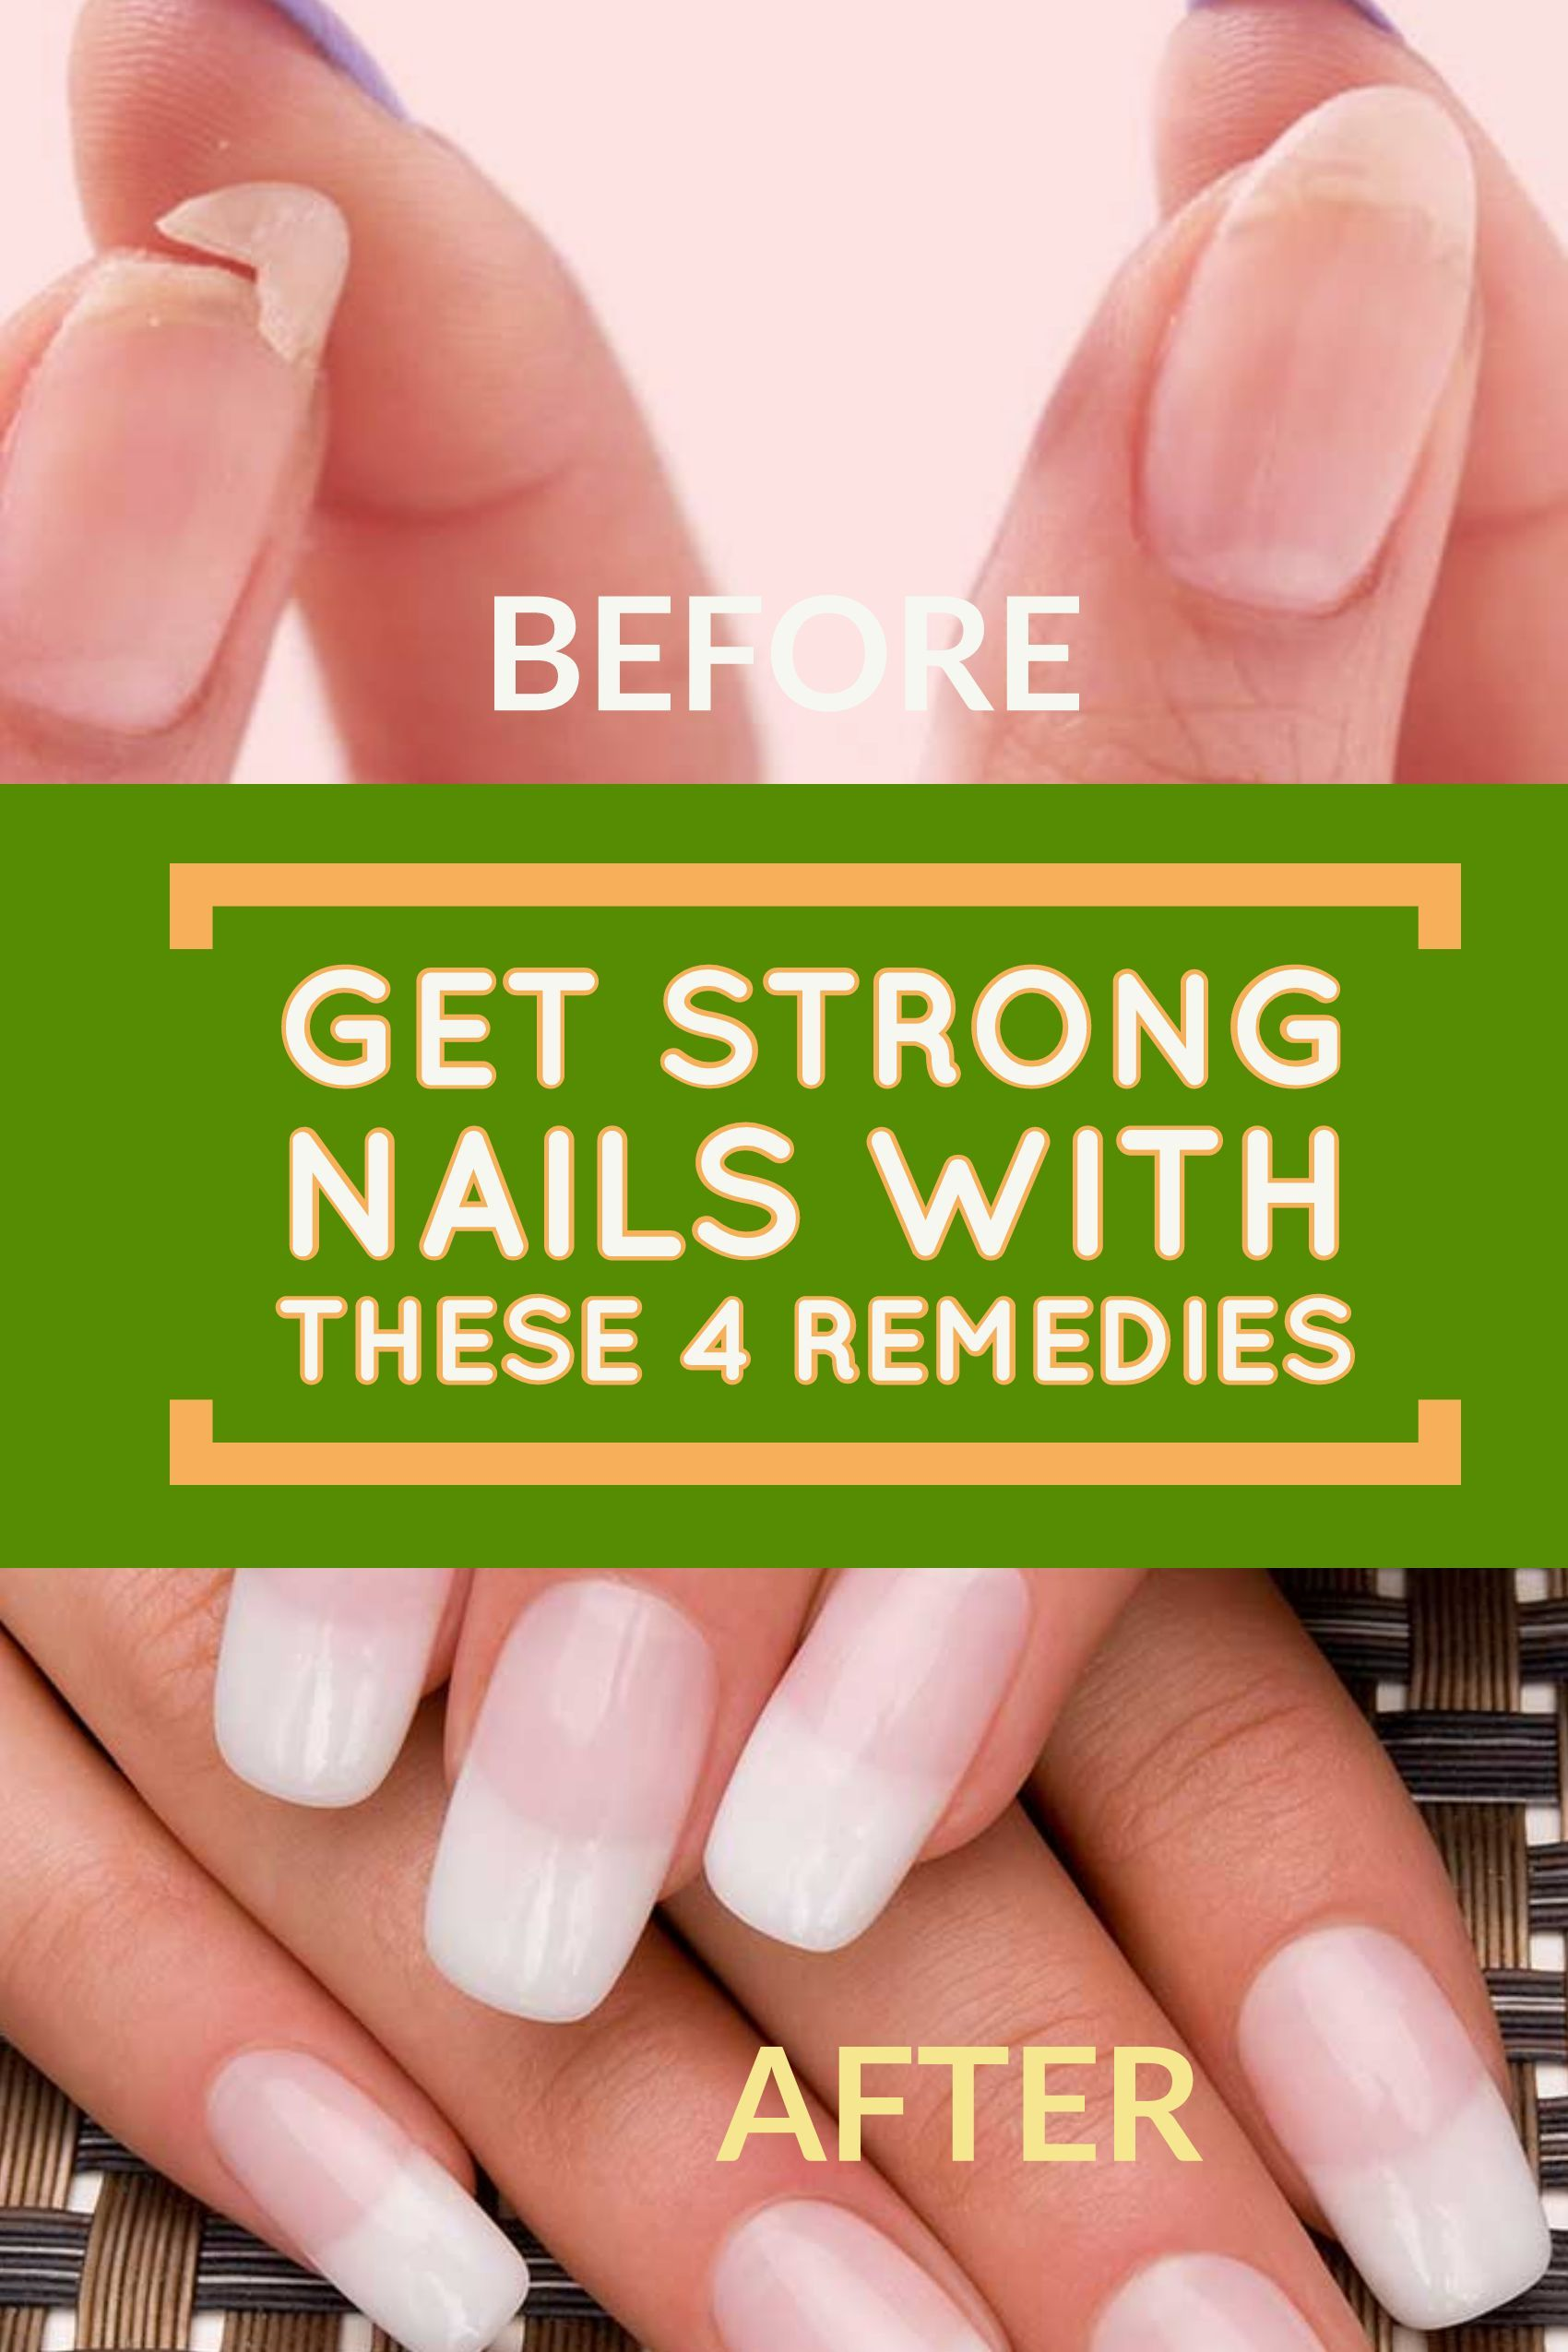 Fragile fingernails? Strengthen them with these 4 natural remedies ...